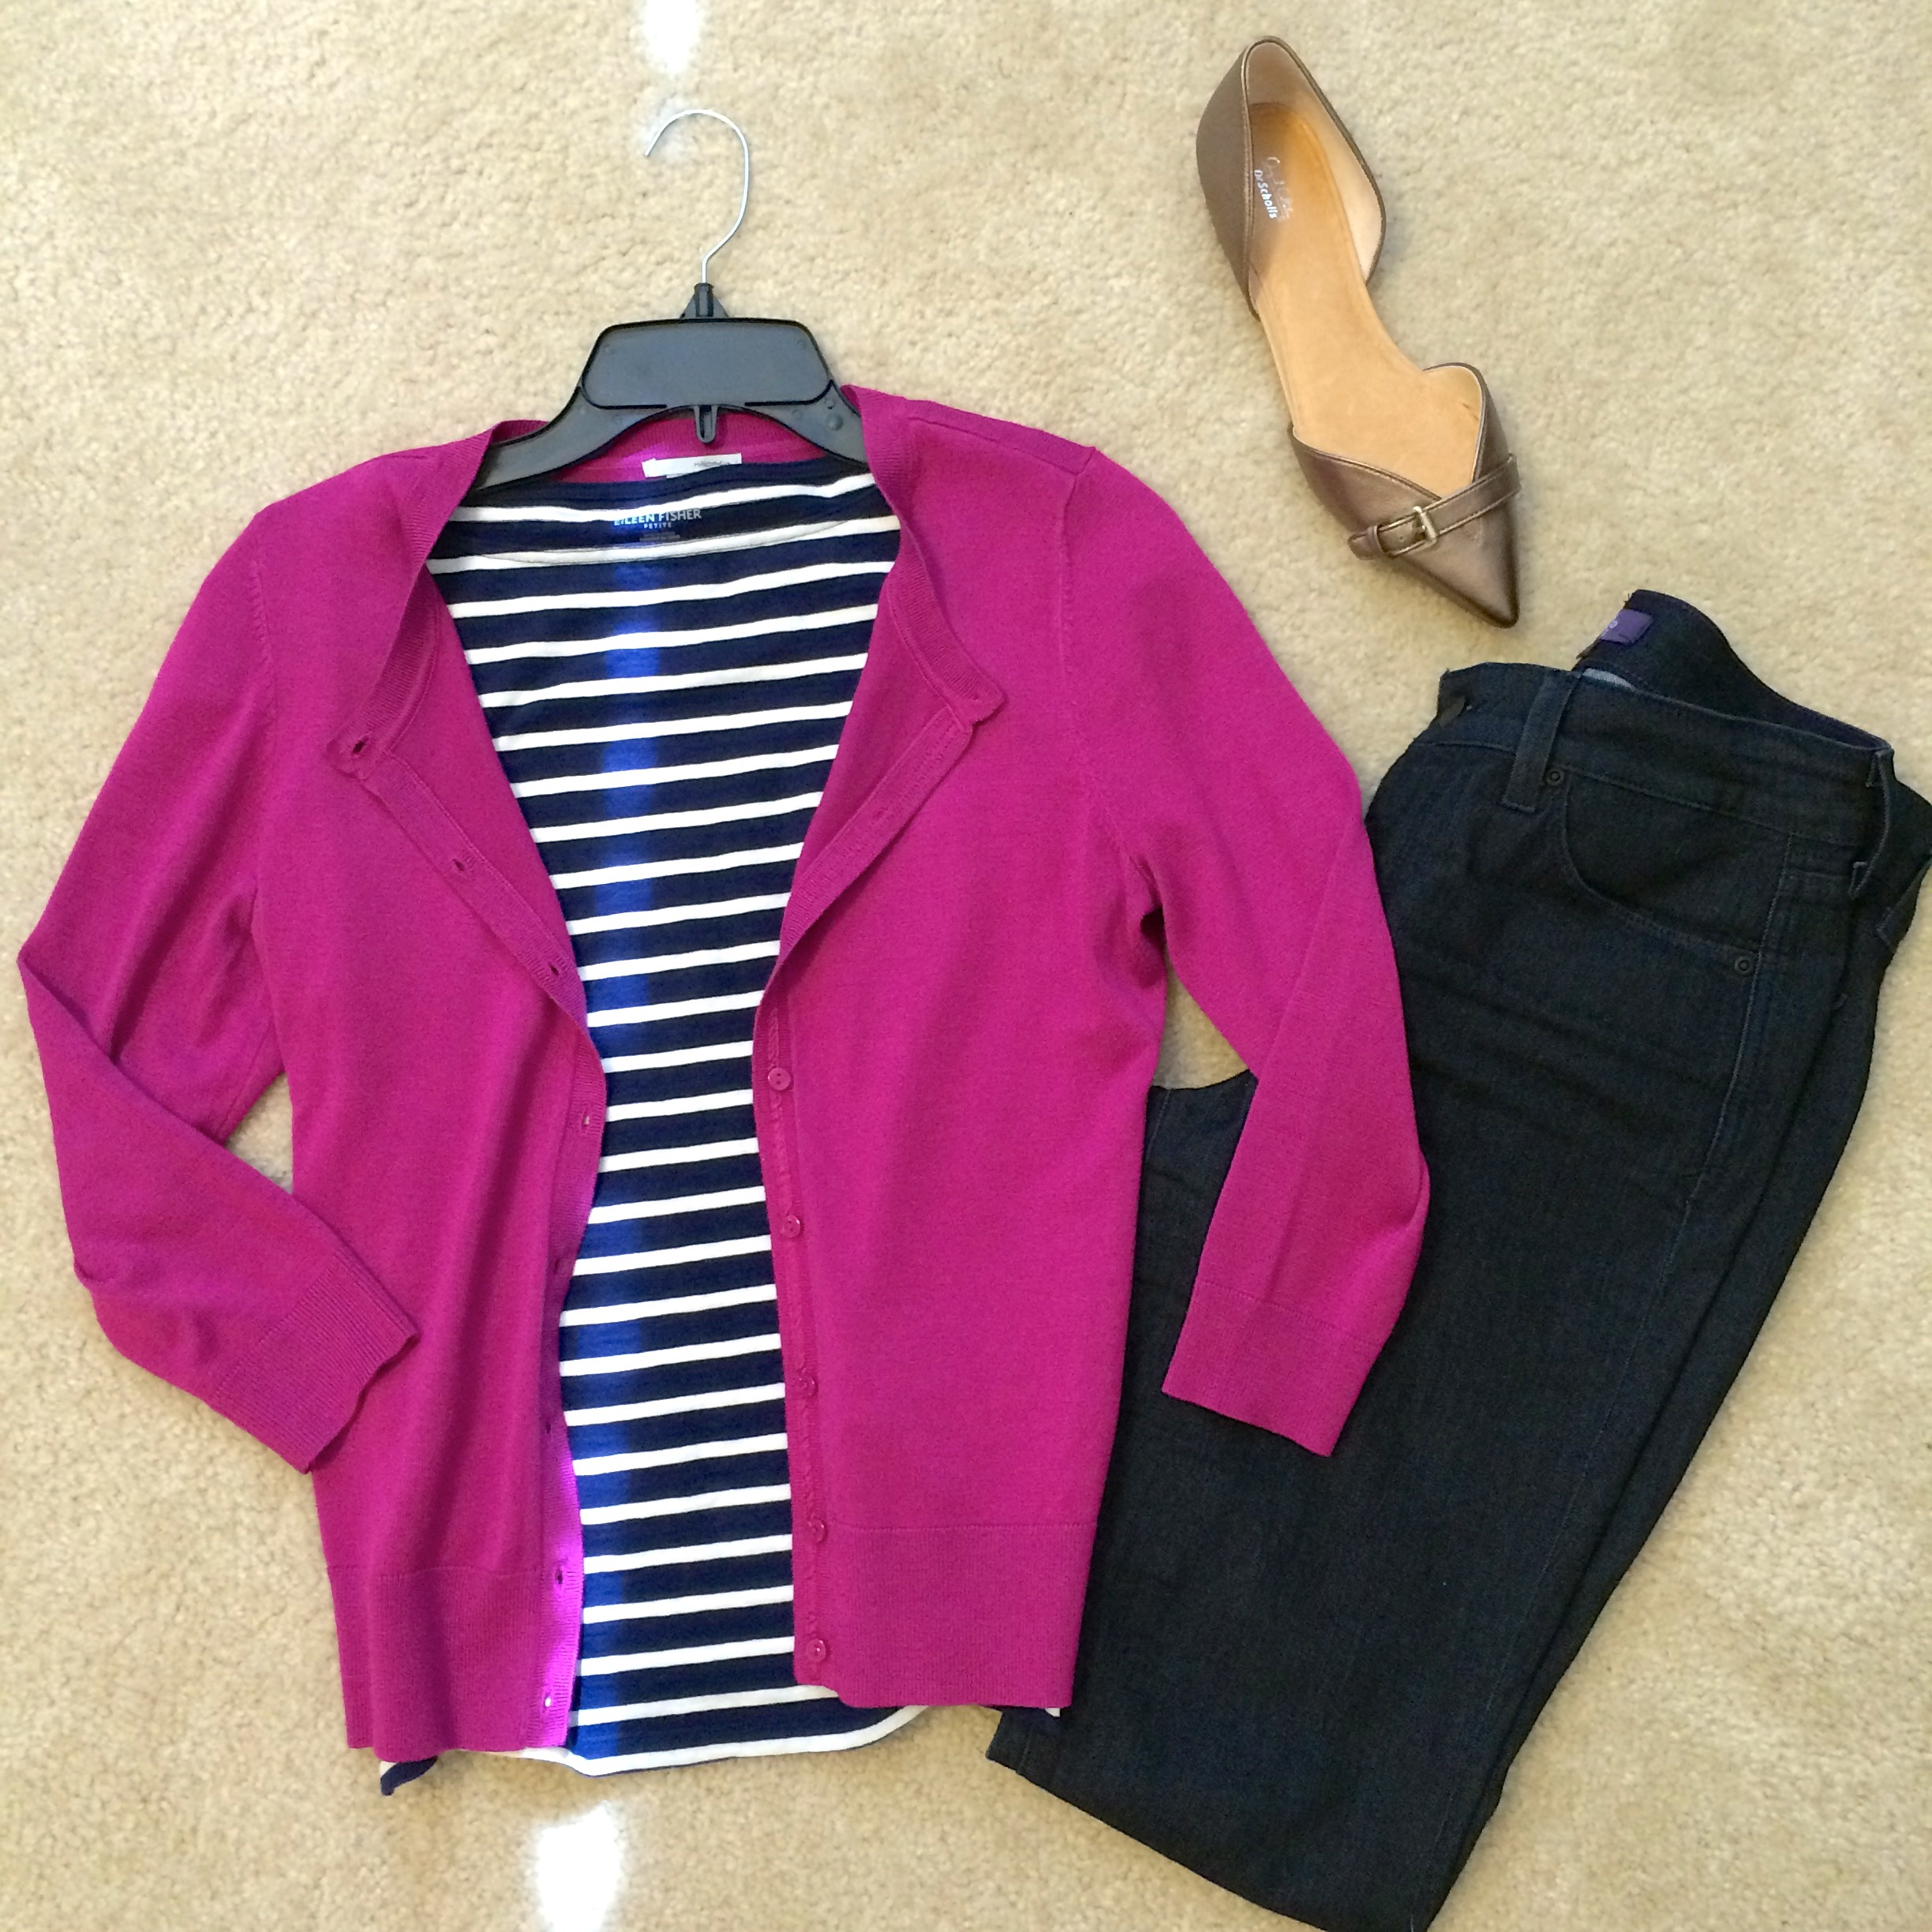 You can play with fun color combinations whether you're dressed up or dressed down. On the weekend, pair jeans with a navy striped t-shirt and pop color cardigan. It's infinitely more stylish than wearing yoga pants all day, but just as easy to pull together.